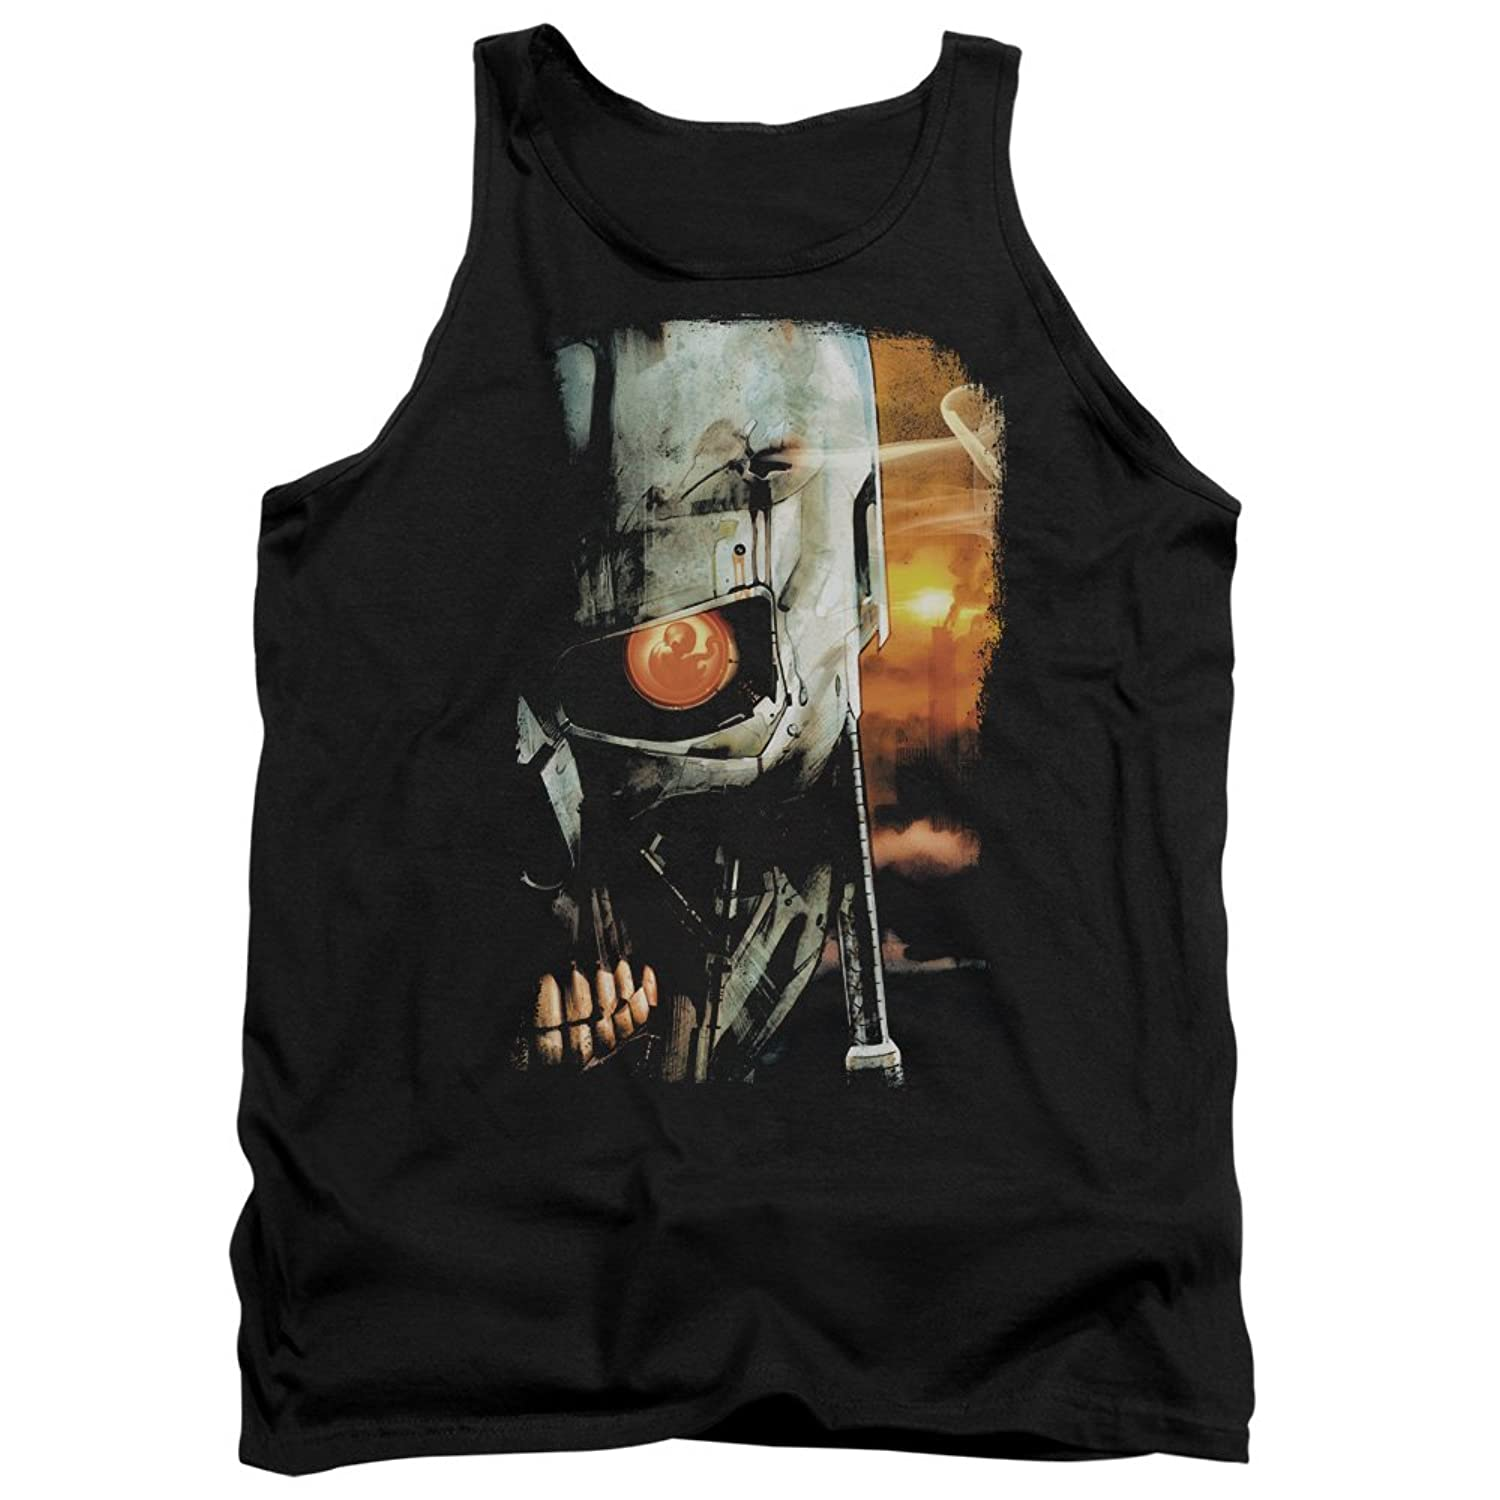 The Terminator 80s Sci-Fi Action Film Skull Sketch Adult Tank Top Shirt